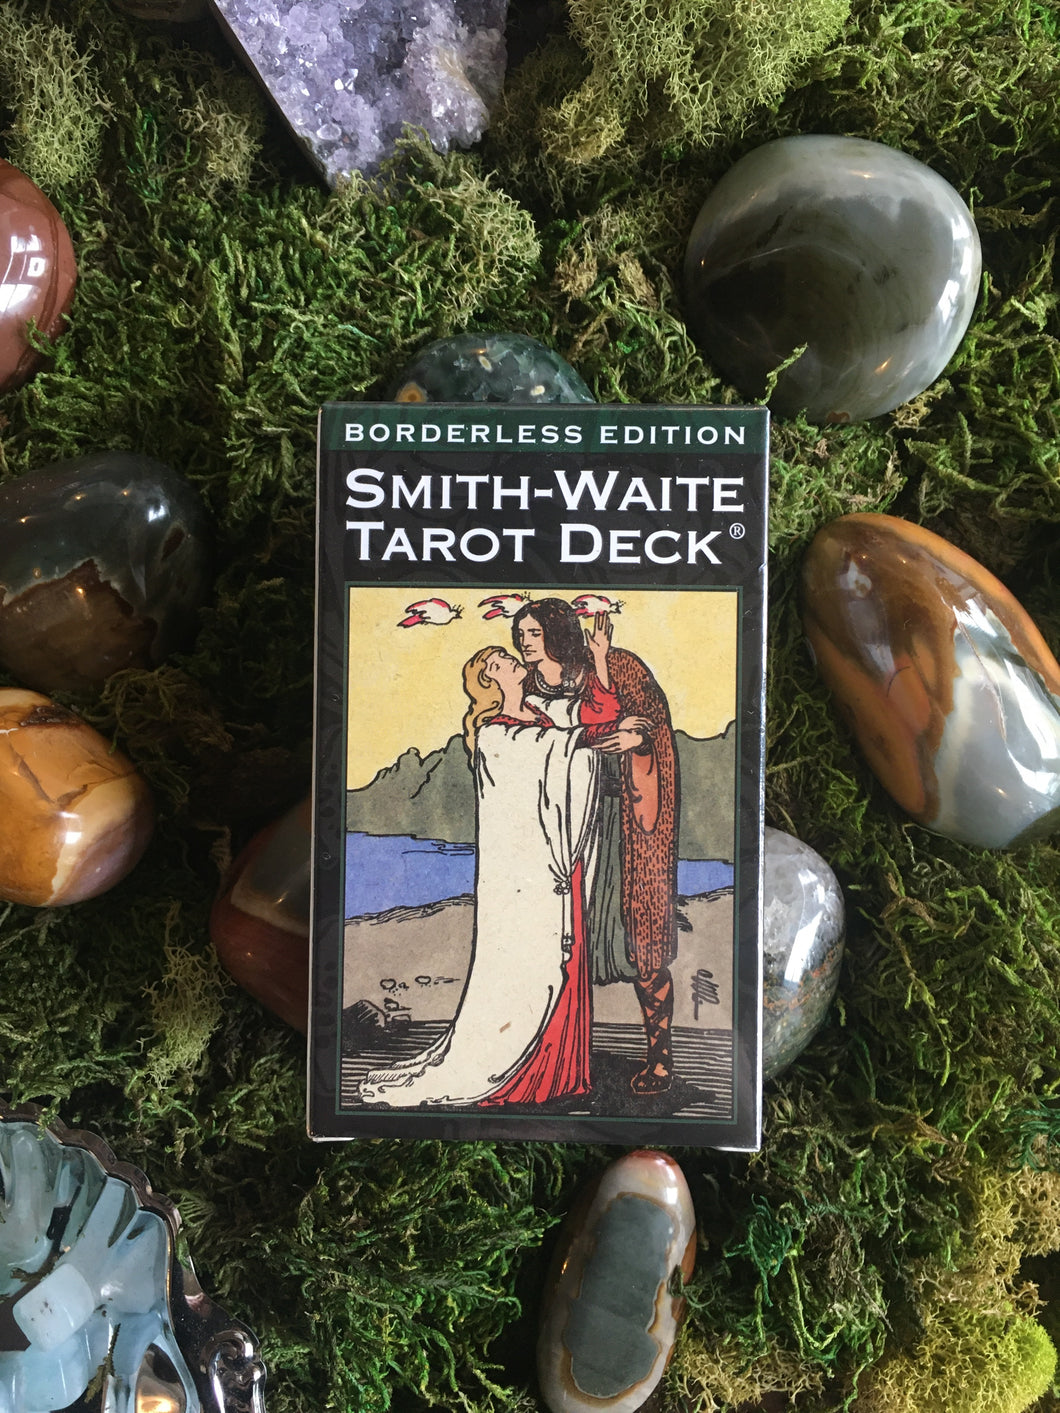 SMITH-WAITE TAROT